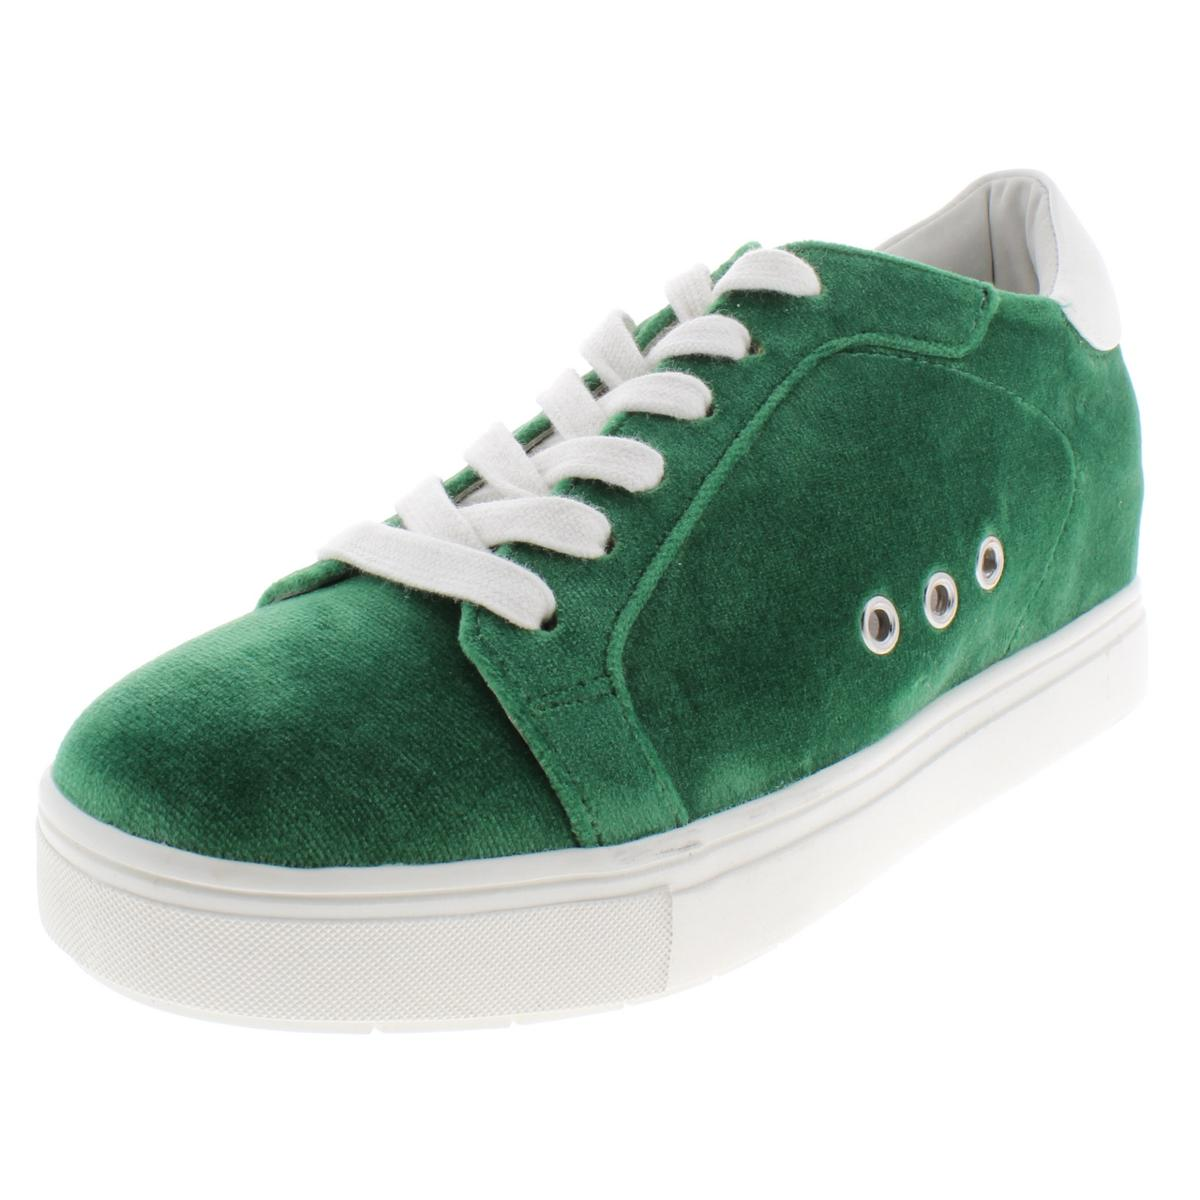 d3a88a8d62b Details about Steve Madden Womens Steal Velvet Wedge Low Top Casual Shoes  Sneakers BHFO 1578